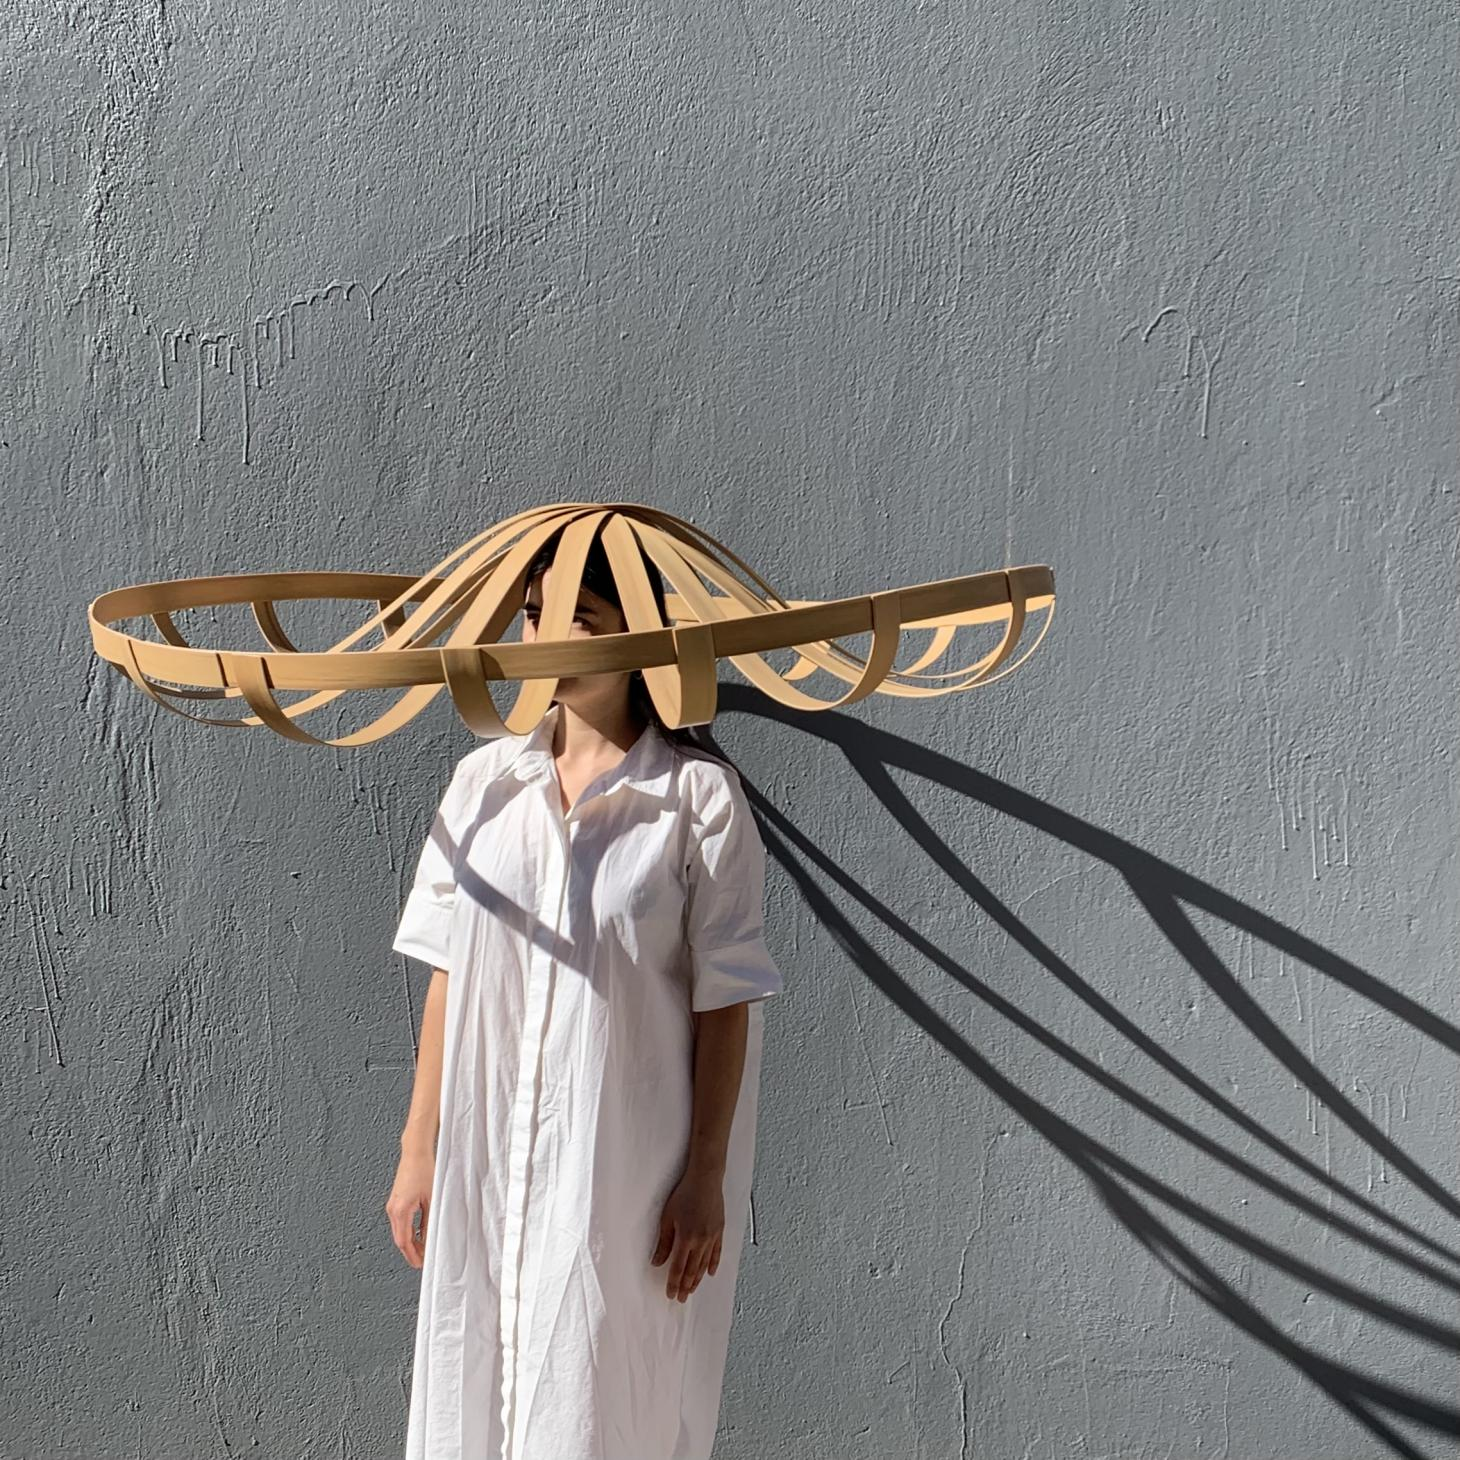 A model wearing a white dress and an oversized straw hat desinged by Stephen Burks